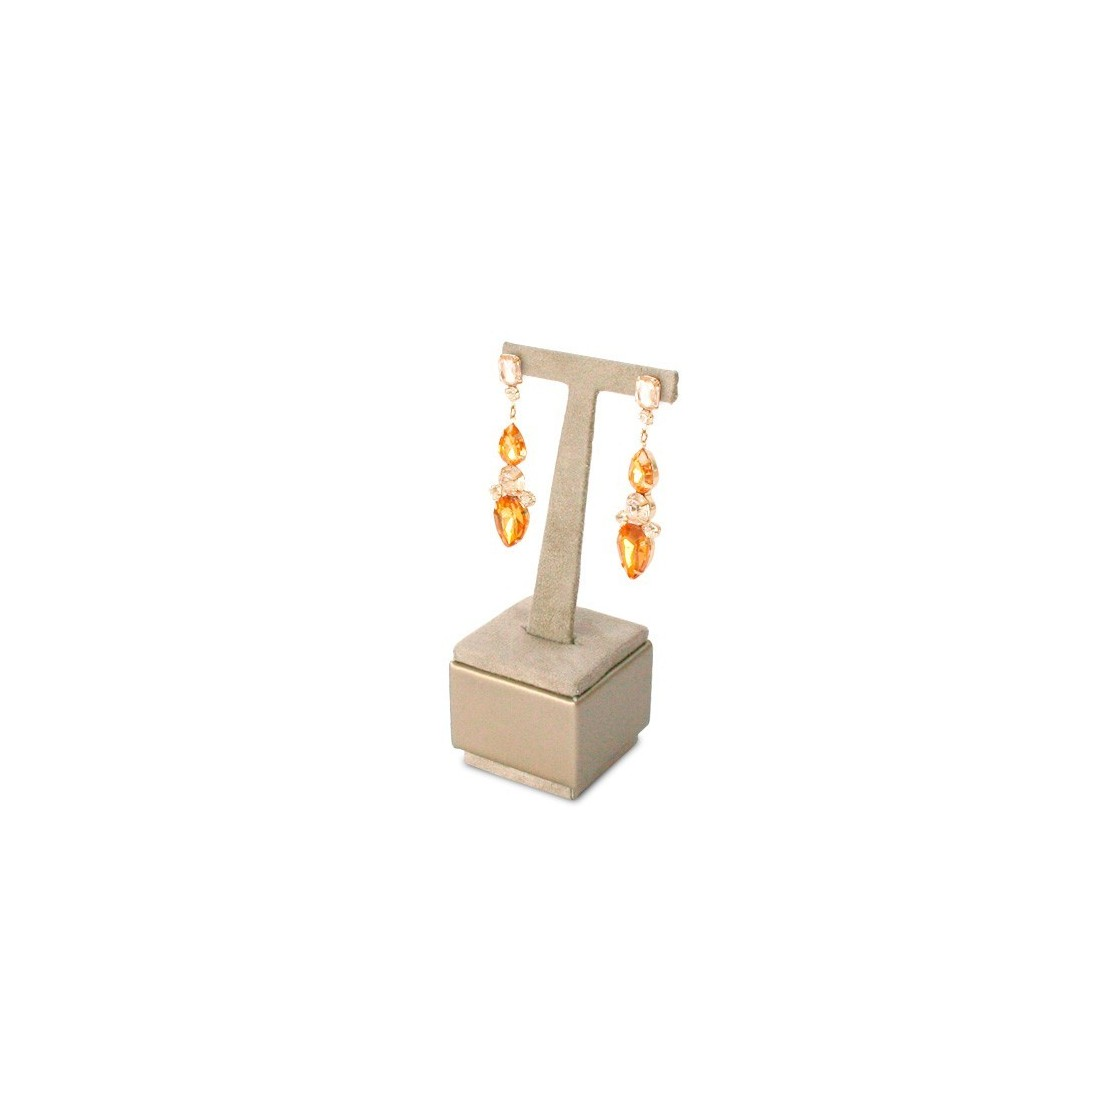 Tree Shaped Display Stand G